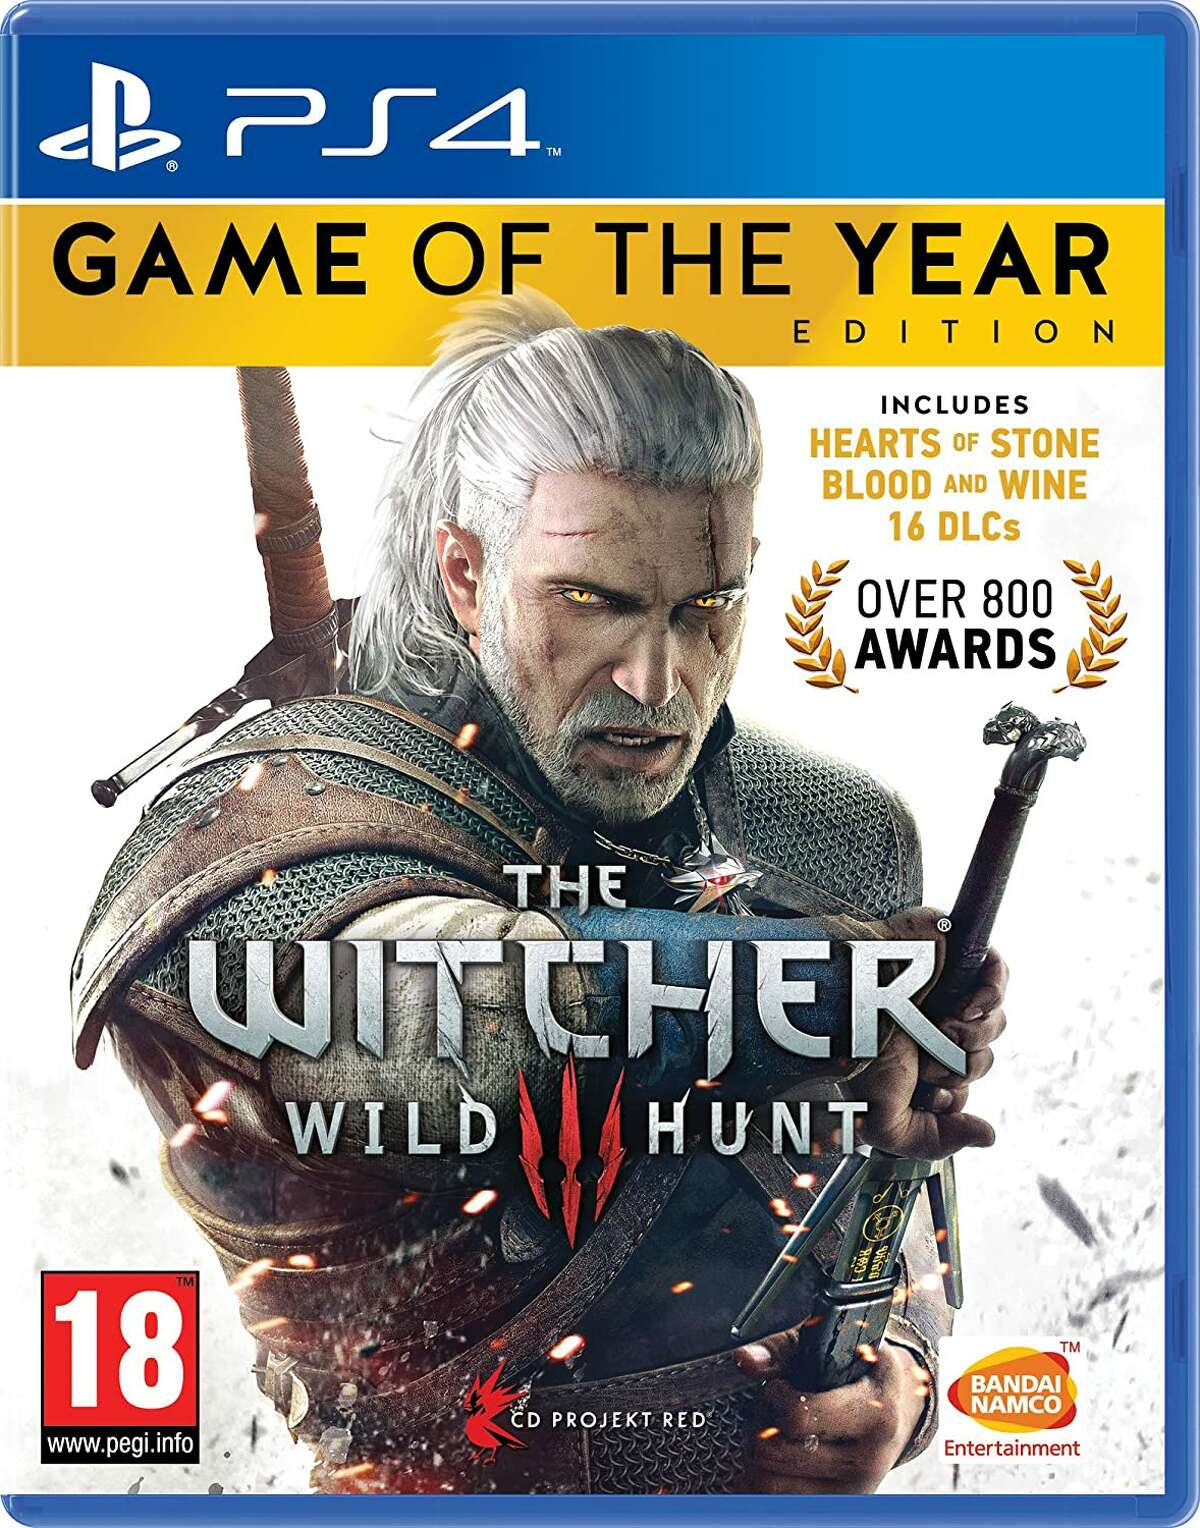 PC ($39.47), PS4 ($28.00), Xbox One ($34.99) and Nintendo Switch ($49.99)